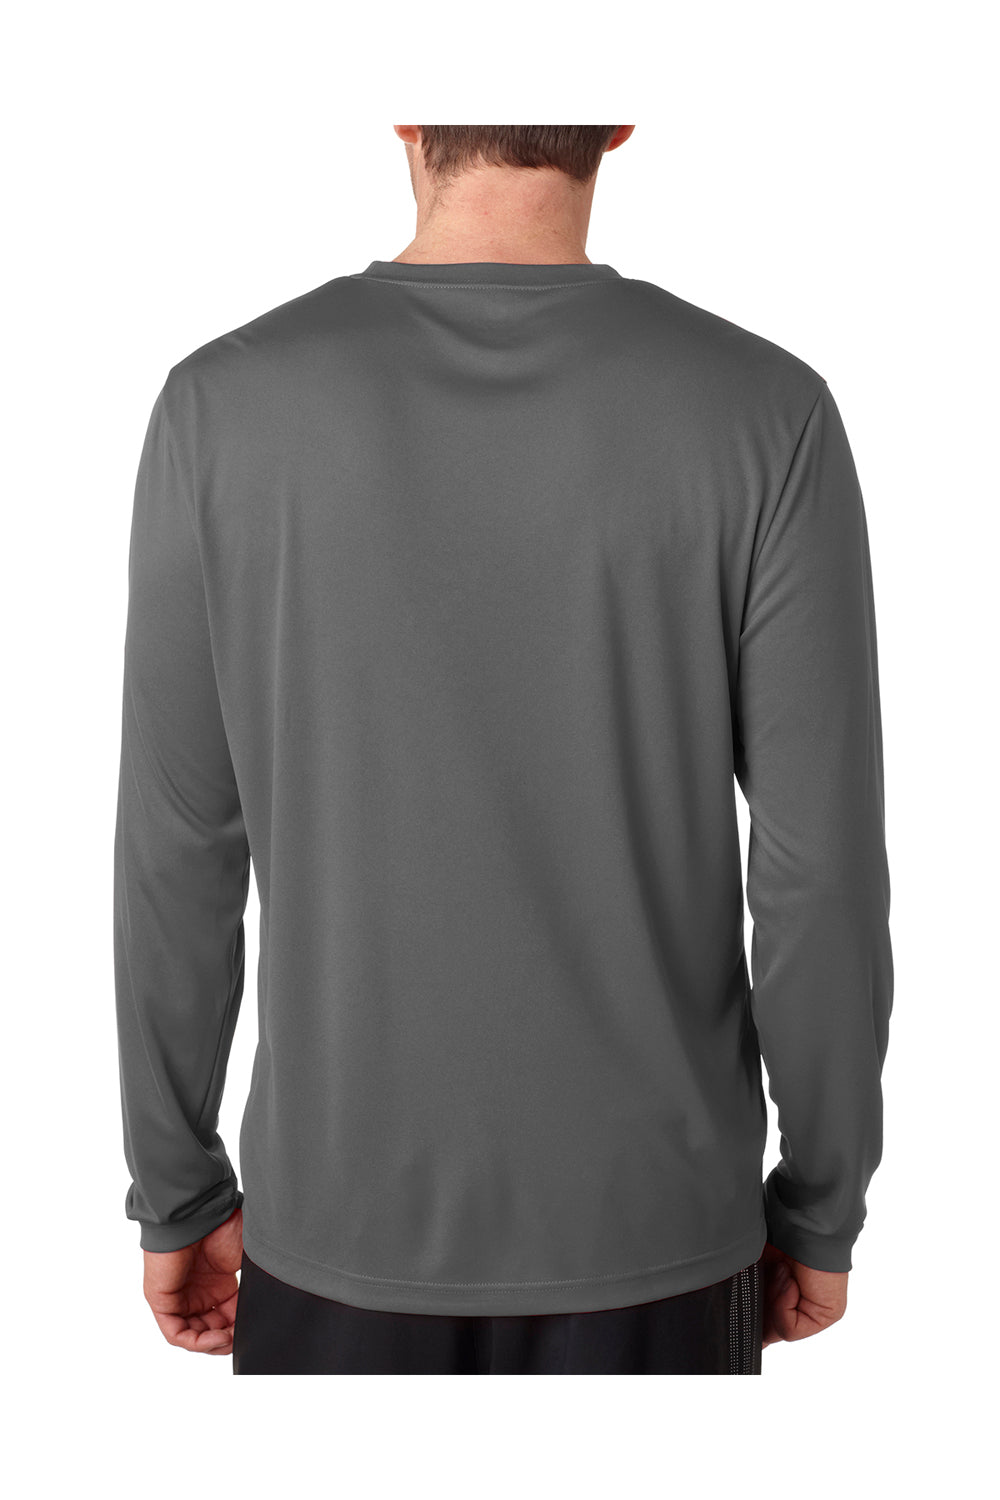 Hanes 482L Mens Cool DRI FreshIQ Moisture Wicking Long Sleeve Crewneck T-Shirt Graphite Grey Back